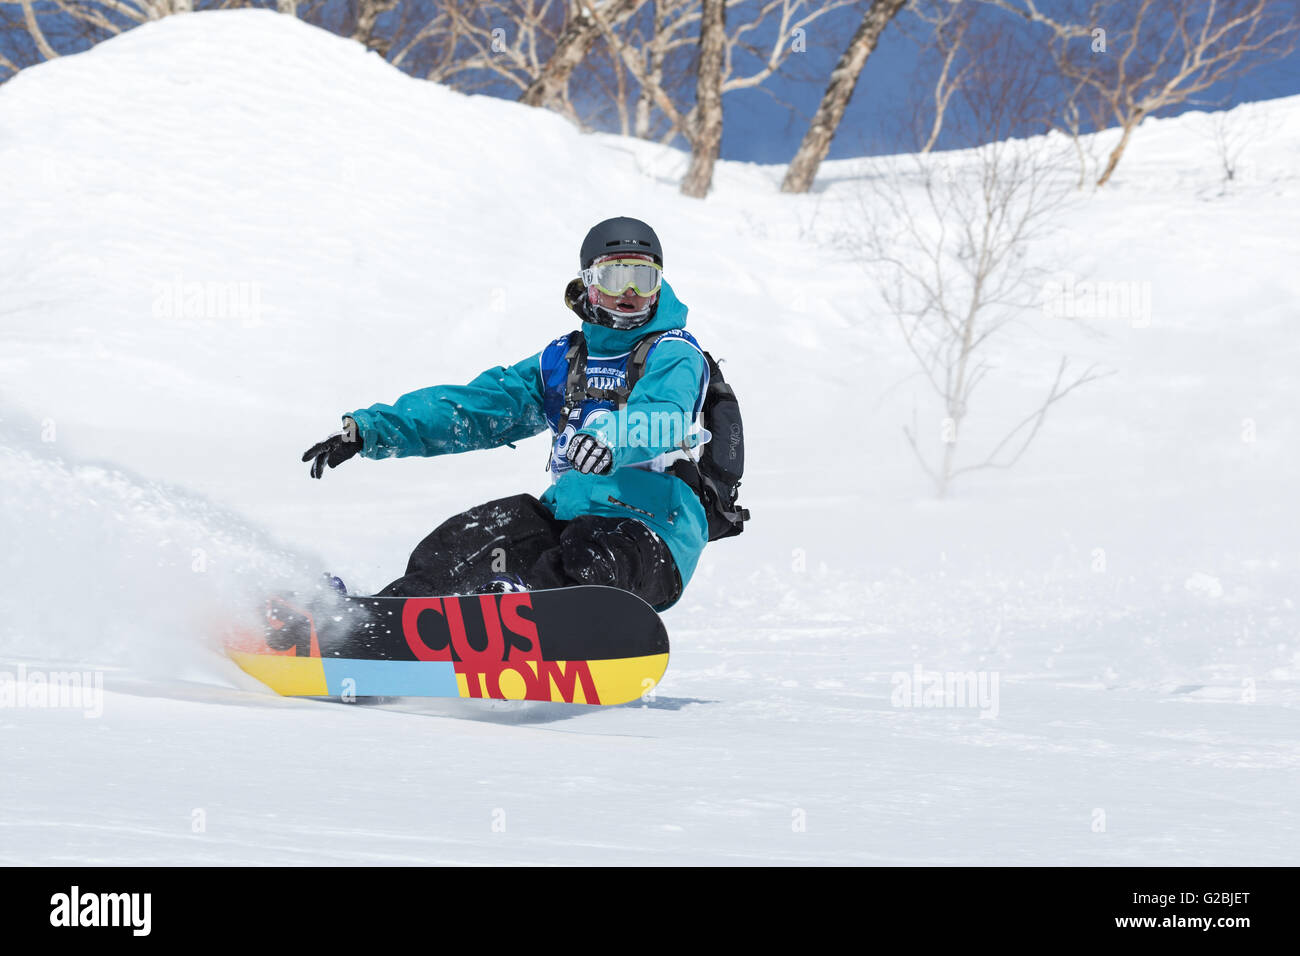 Snowboarder rides steep mountains. Competitions freeride skiers and snowboarders Kamchatka Freeride Open Cup - Stock Image